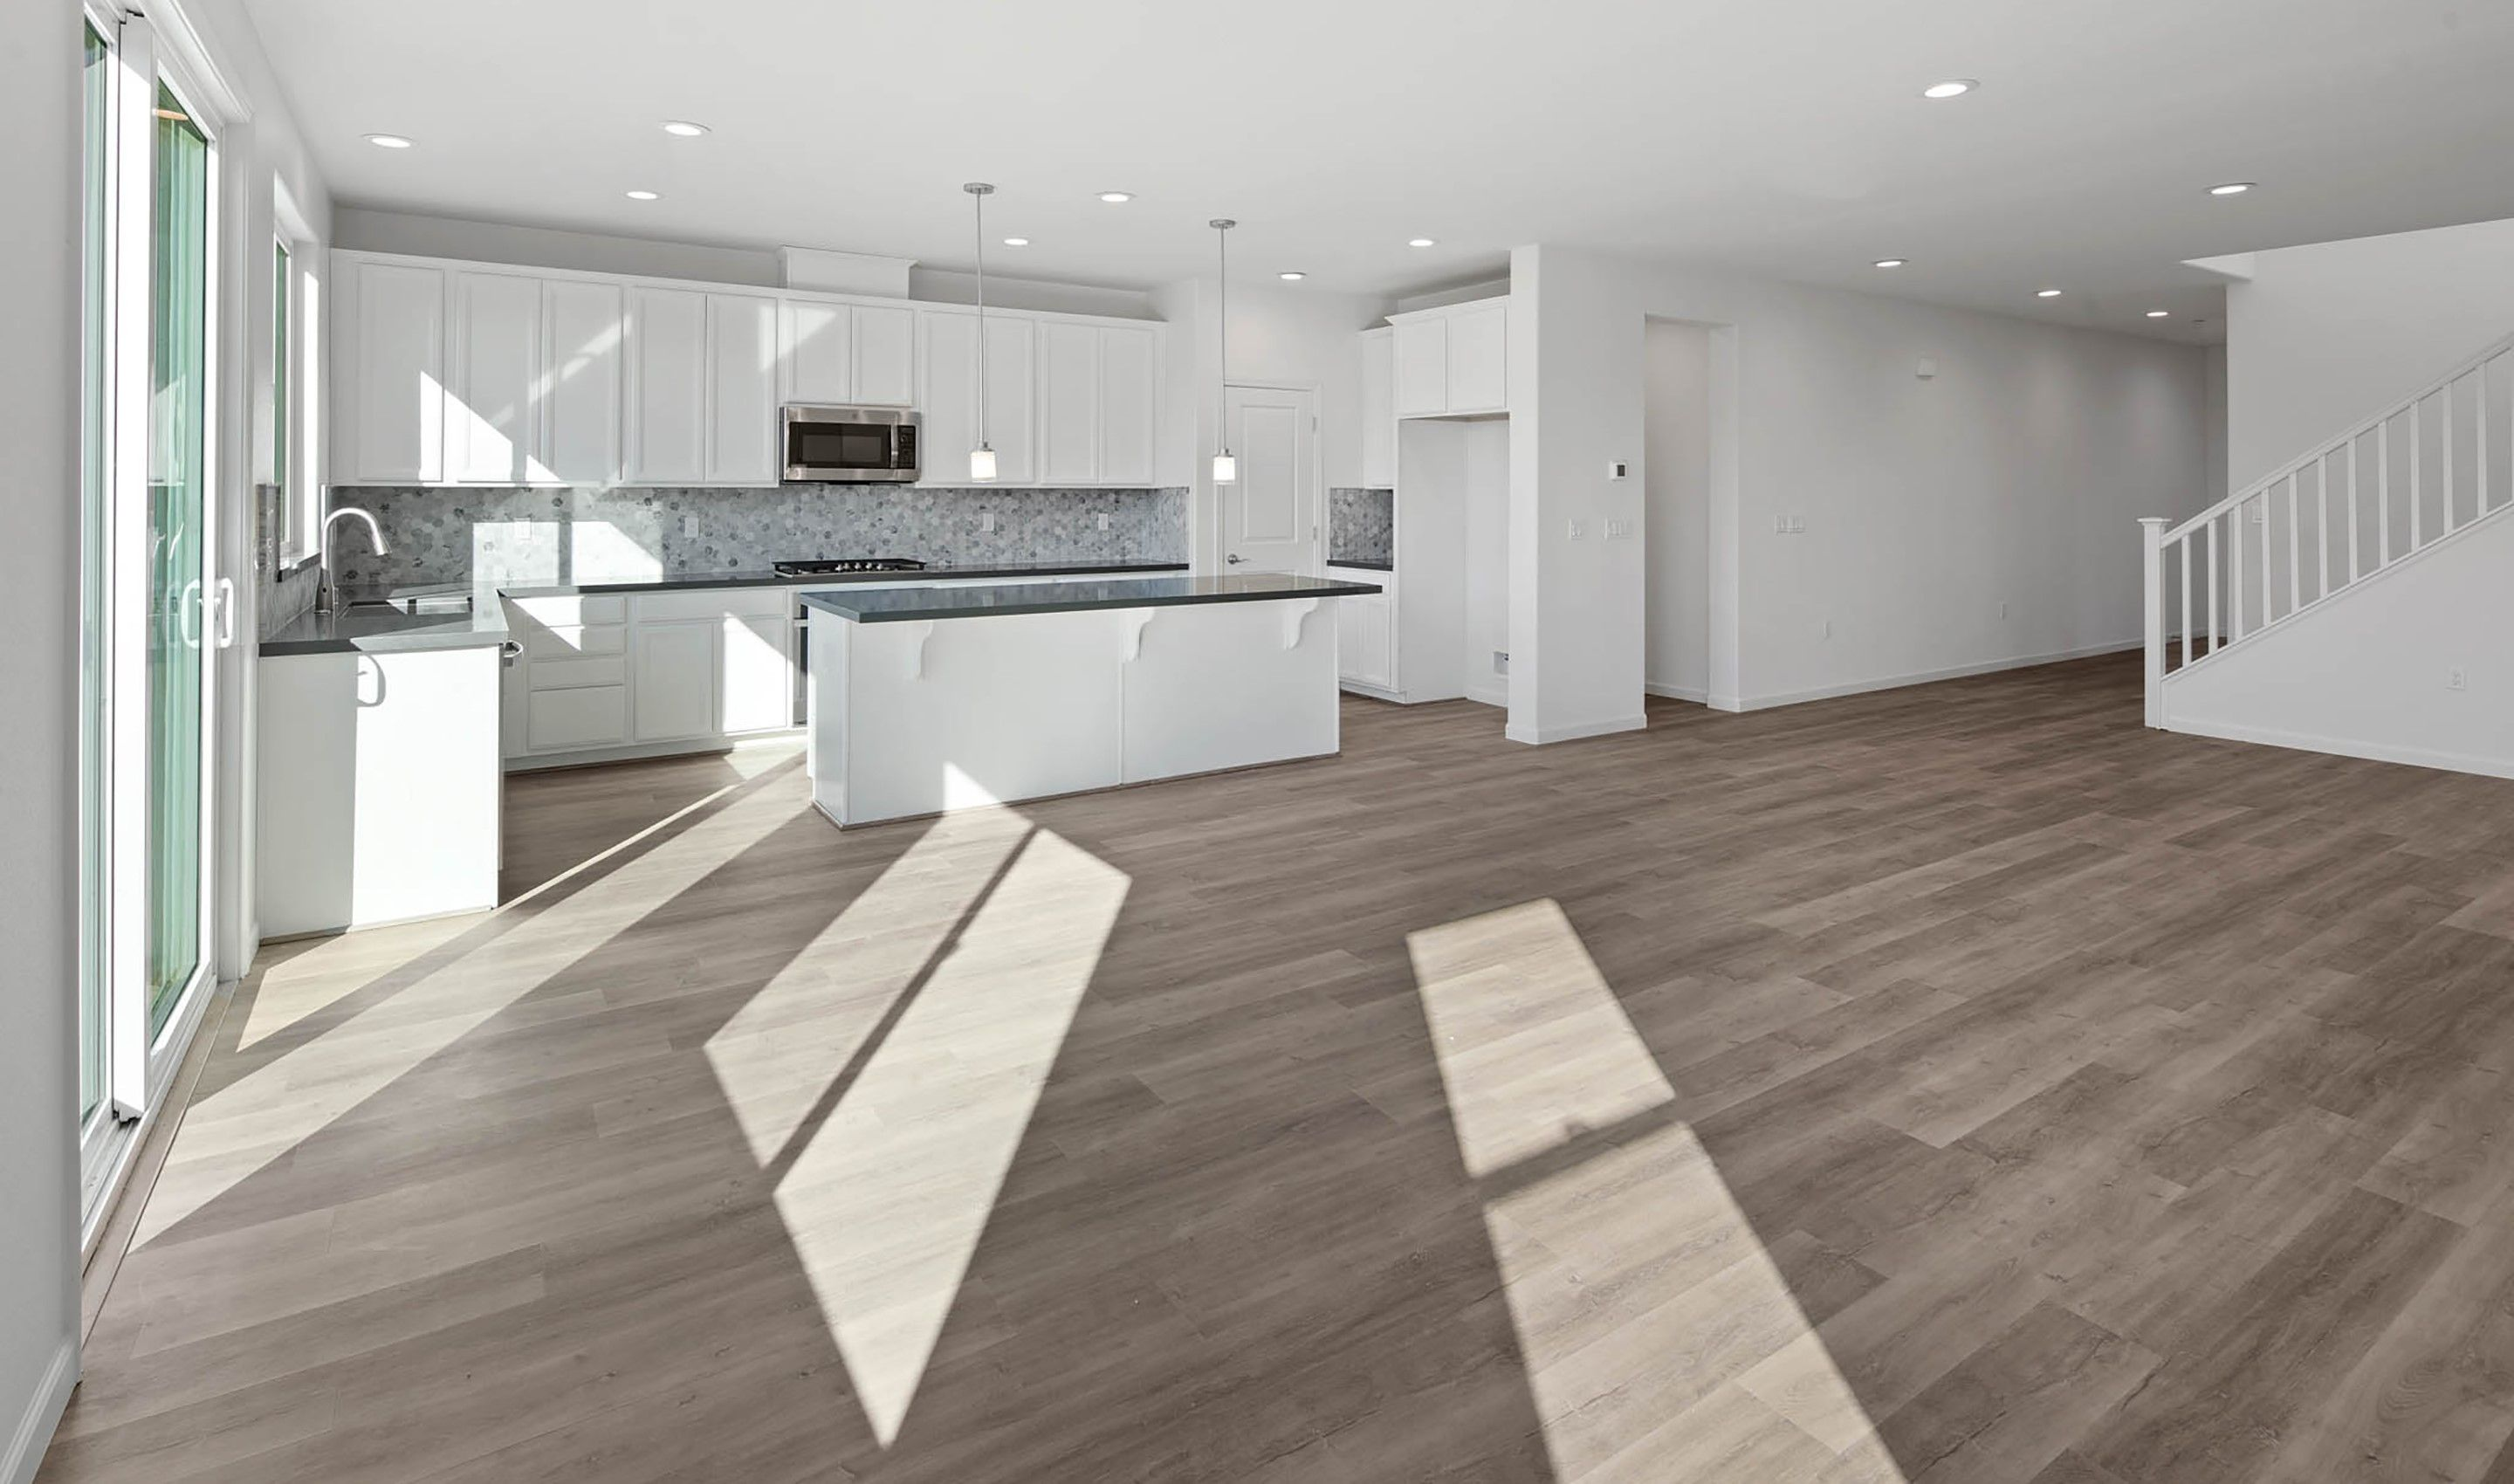 Kitchen featured in the Province By K. Hovnanian® Homes in Oakland-Alameda, CA